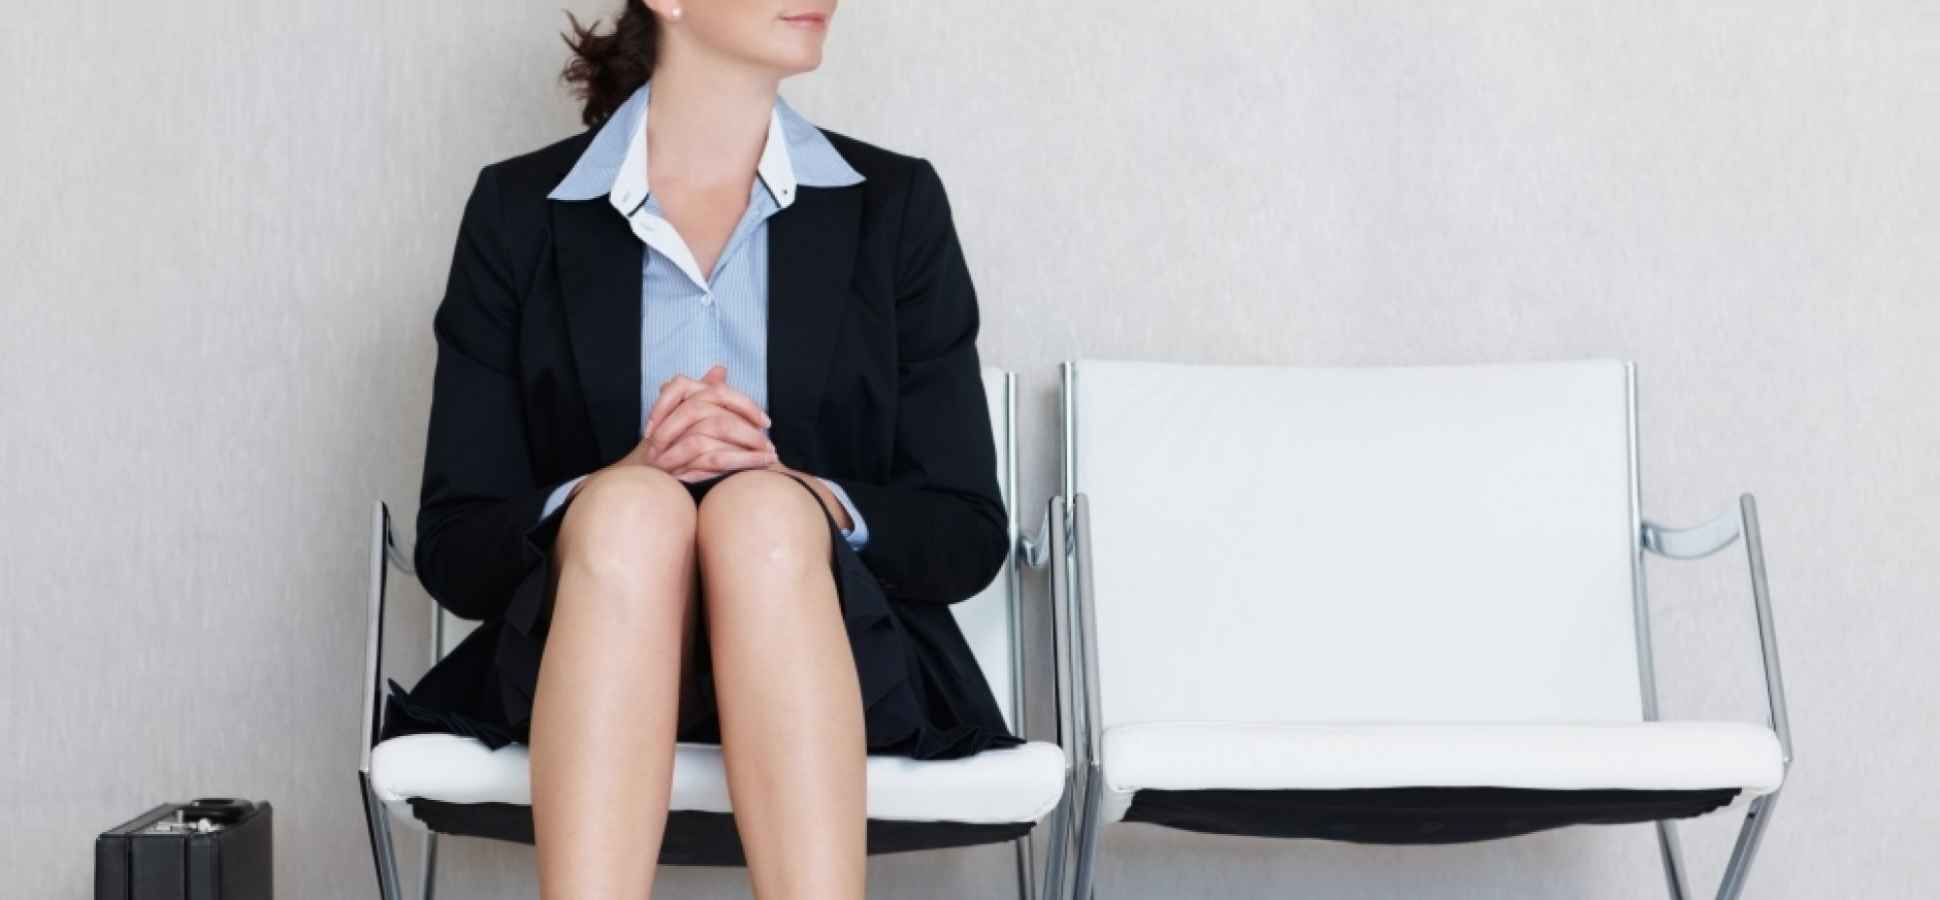 7 Ways to Send a Better Message With Body Language